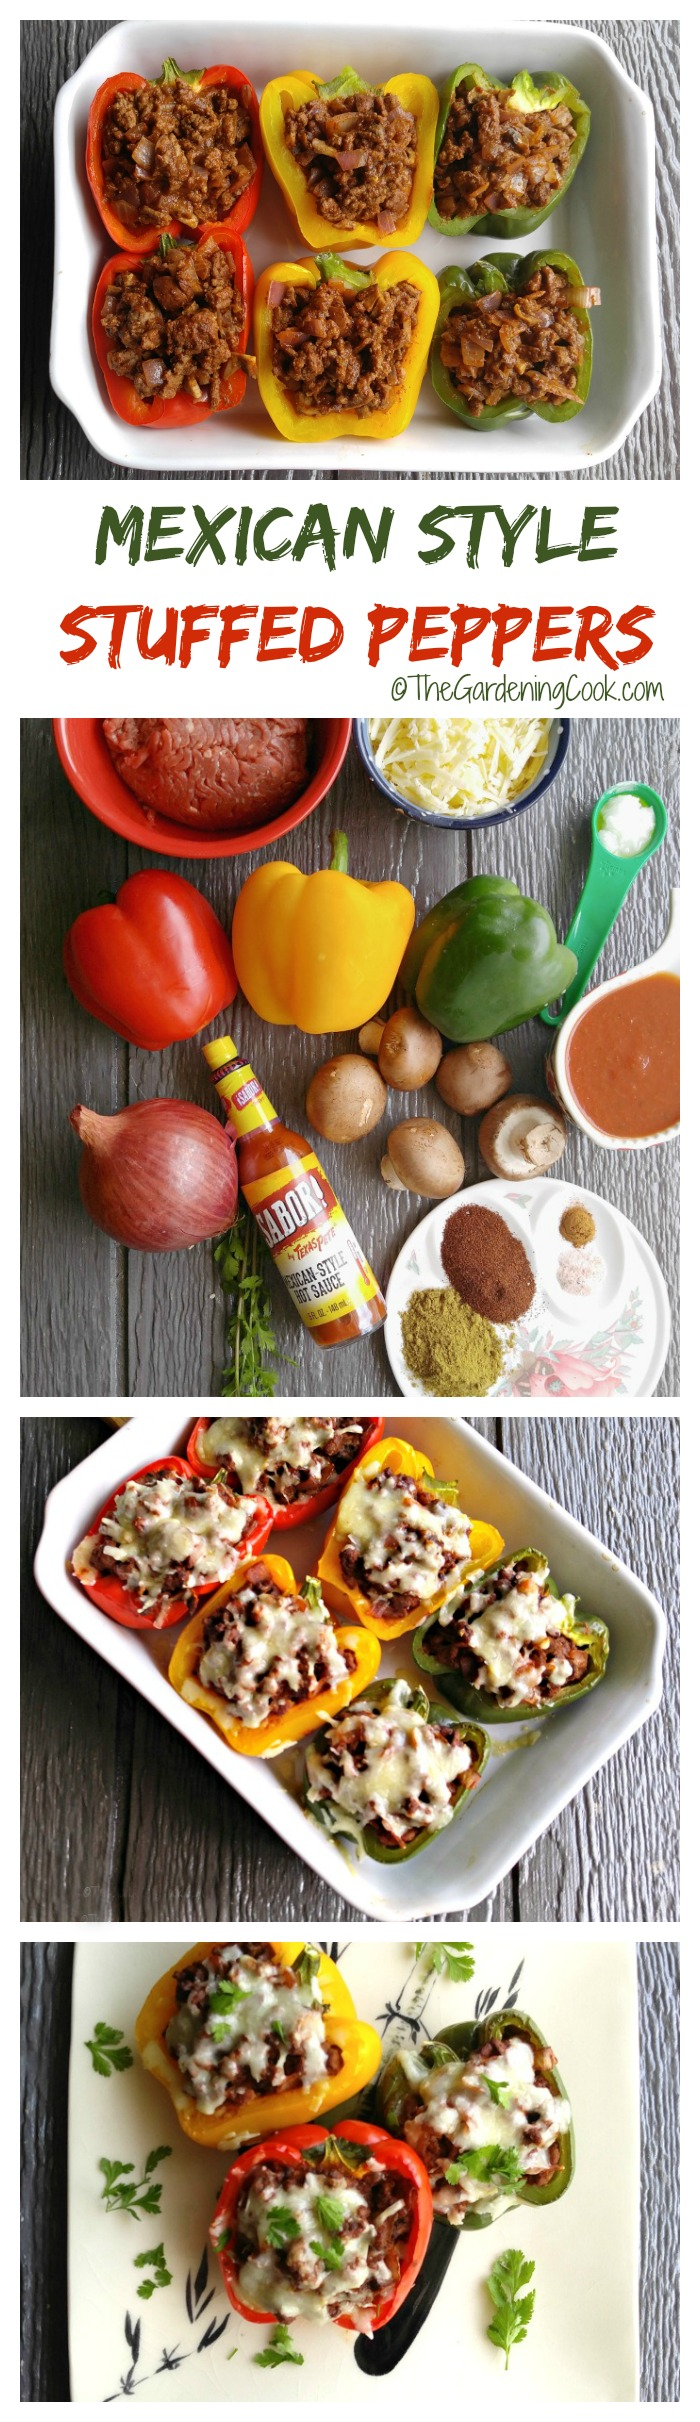 Mexican Style Stuffed Peppers - a Spicy Dinner Time Recipe